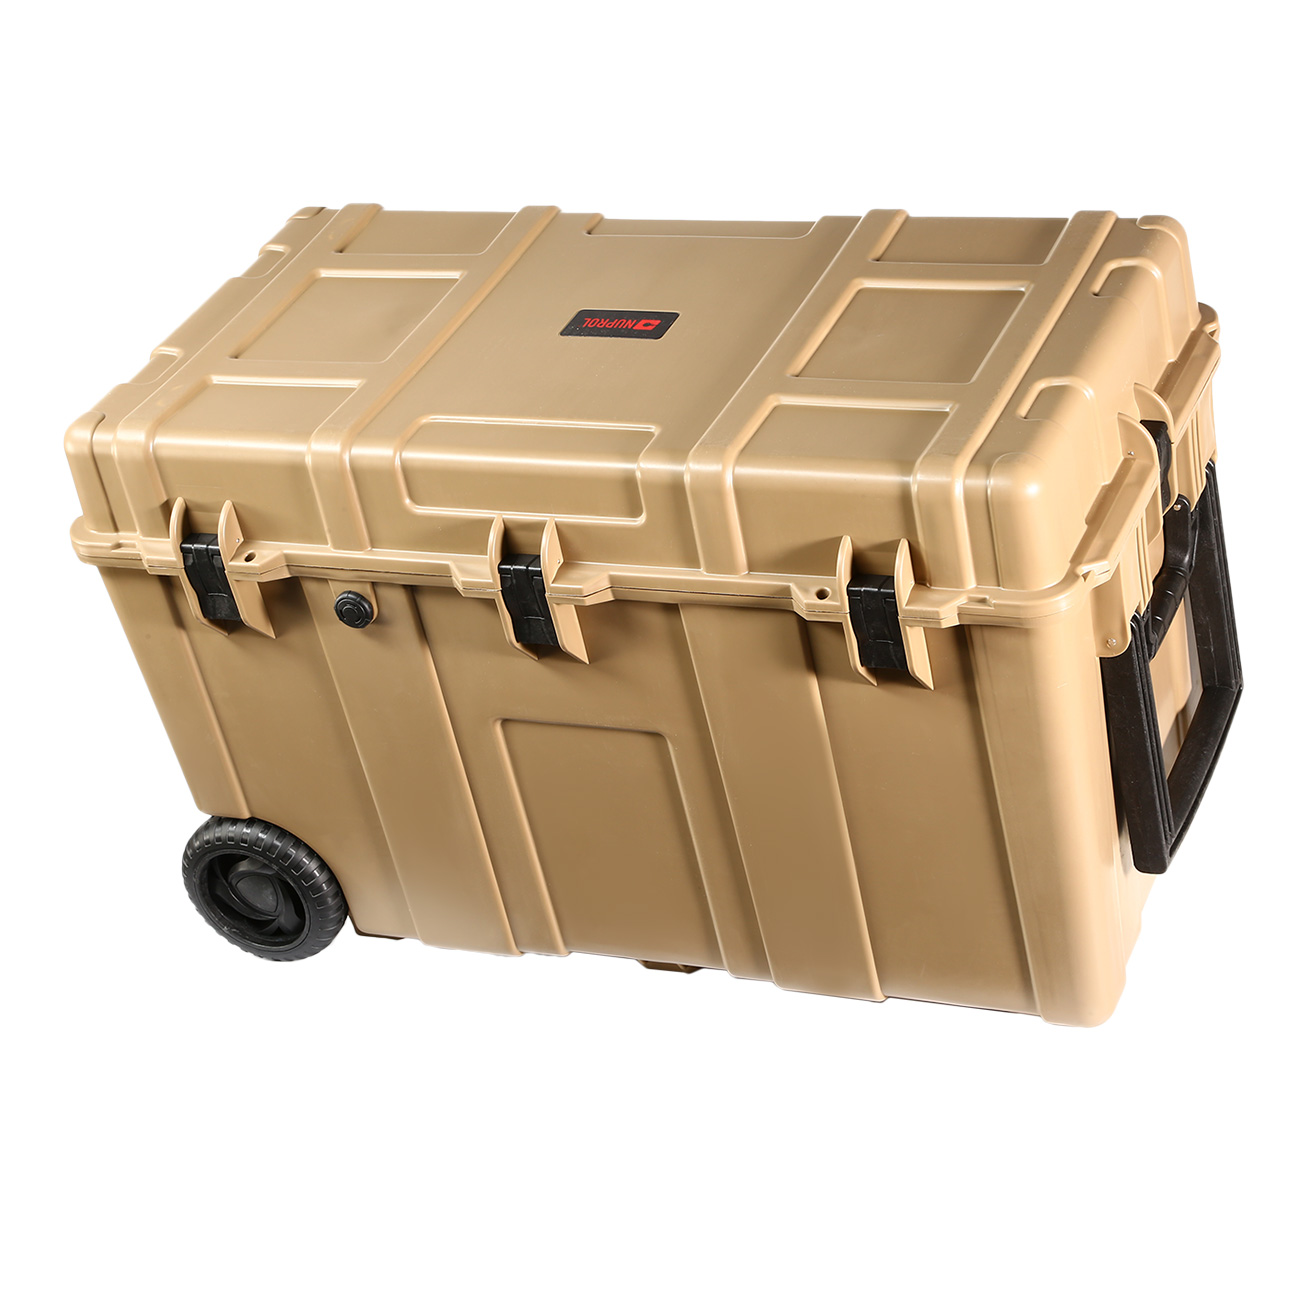 Nuprol Kit Box / Ultimate Hard Case Transport-Trolley 86 x 46 x 53 cm tan 4